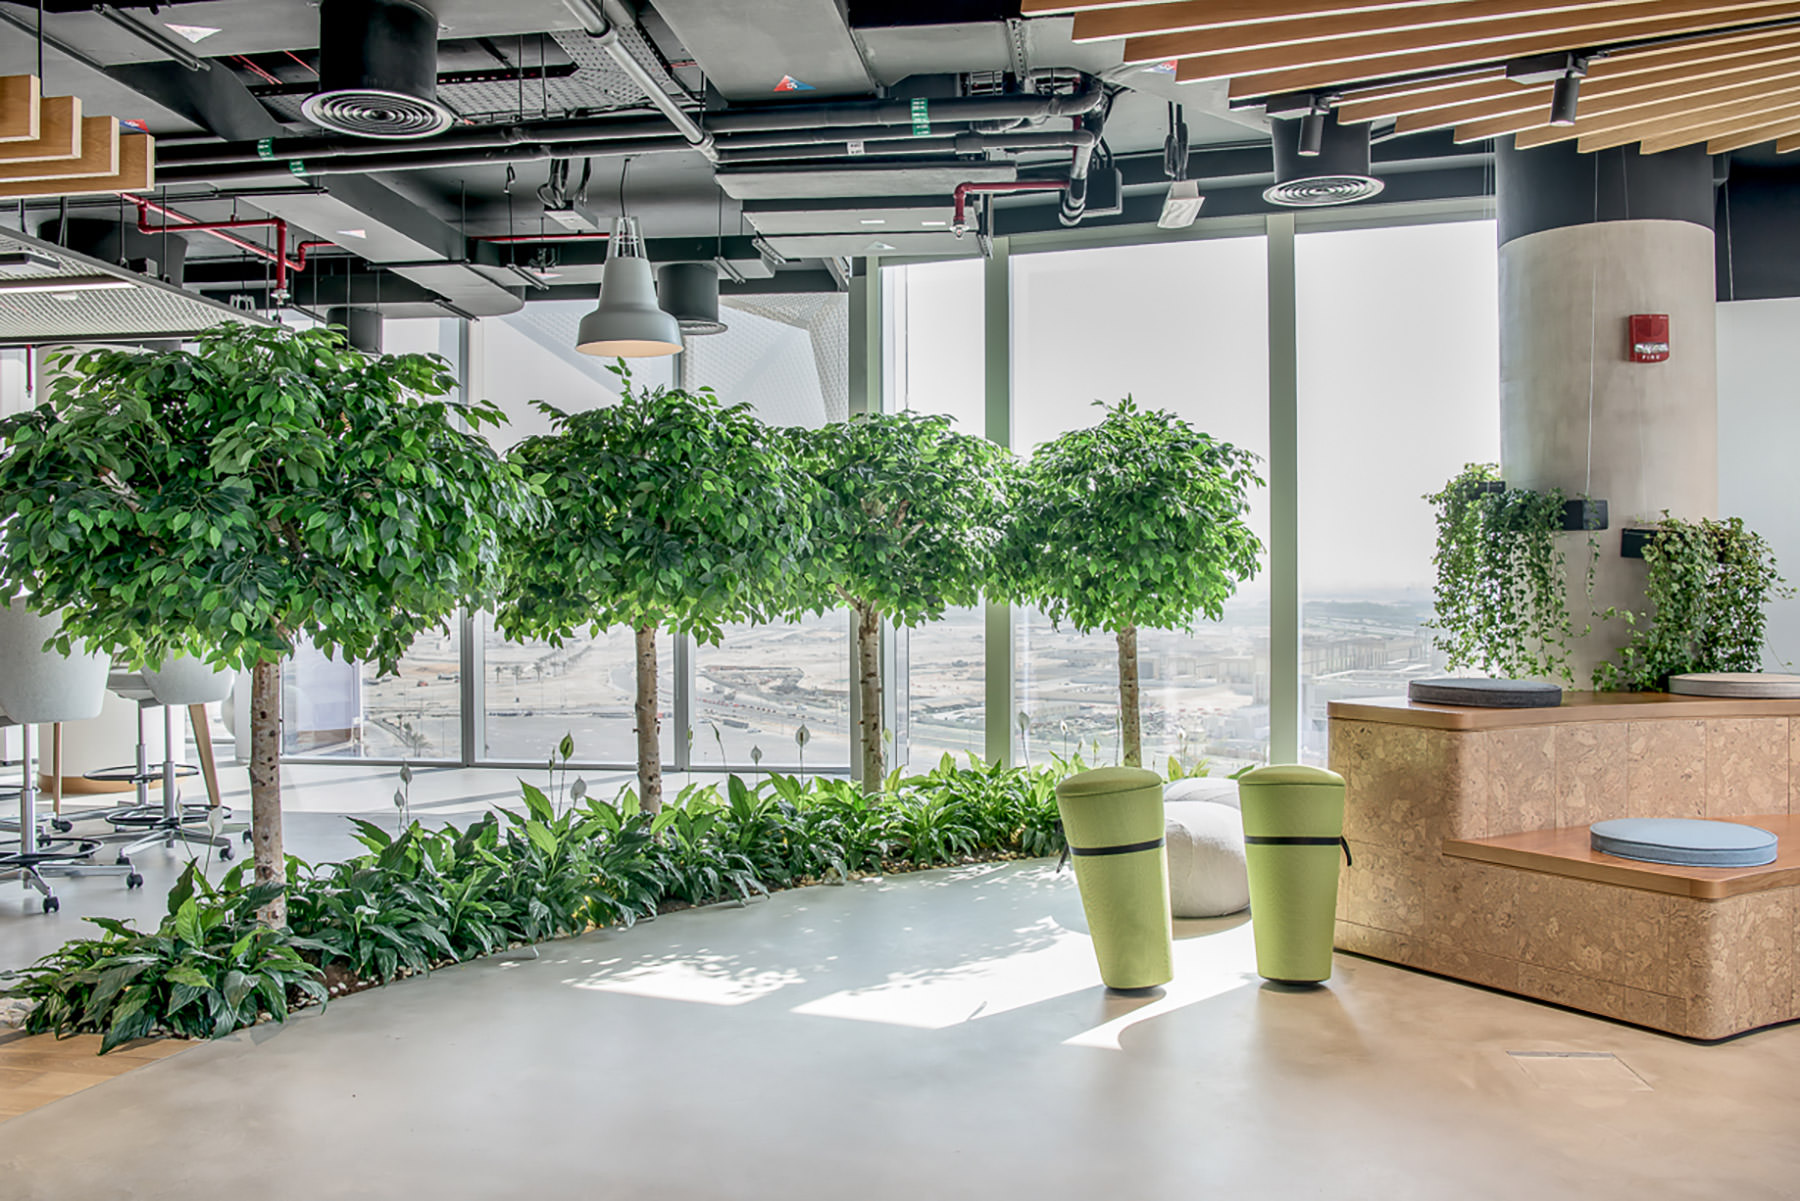 Meeting Area with Trees by Planters